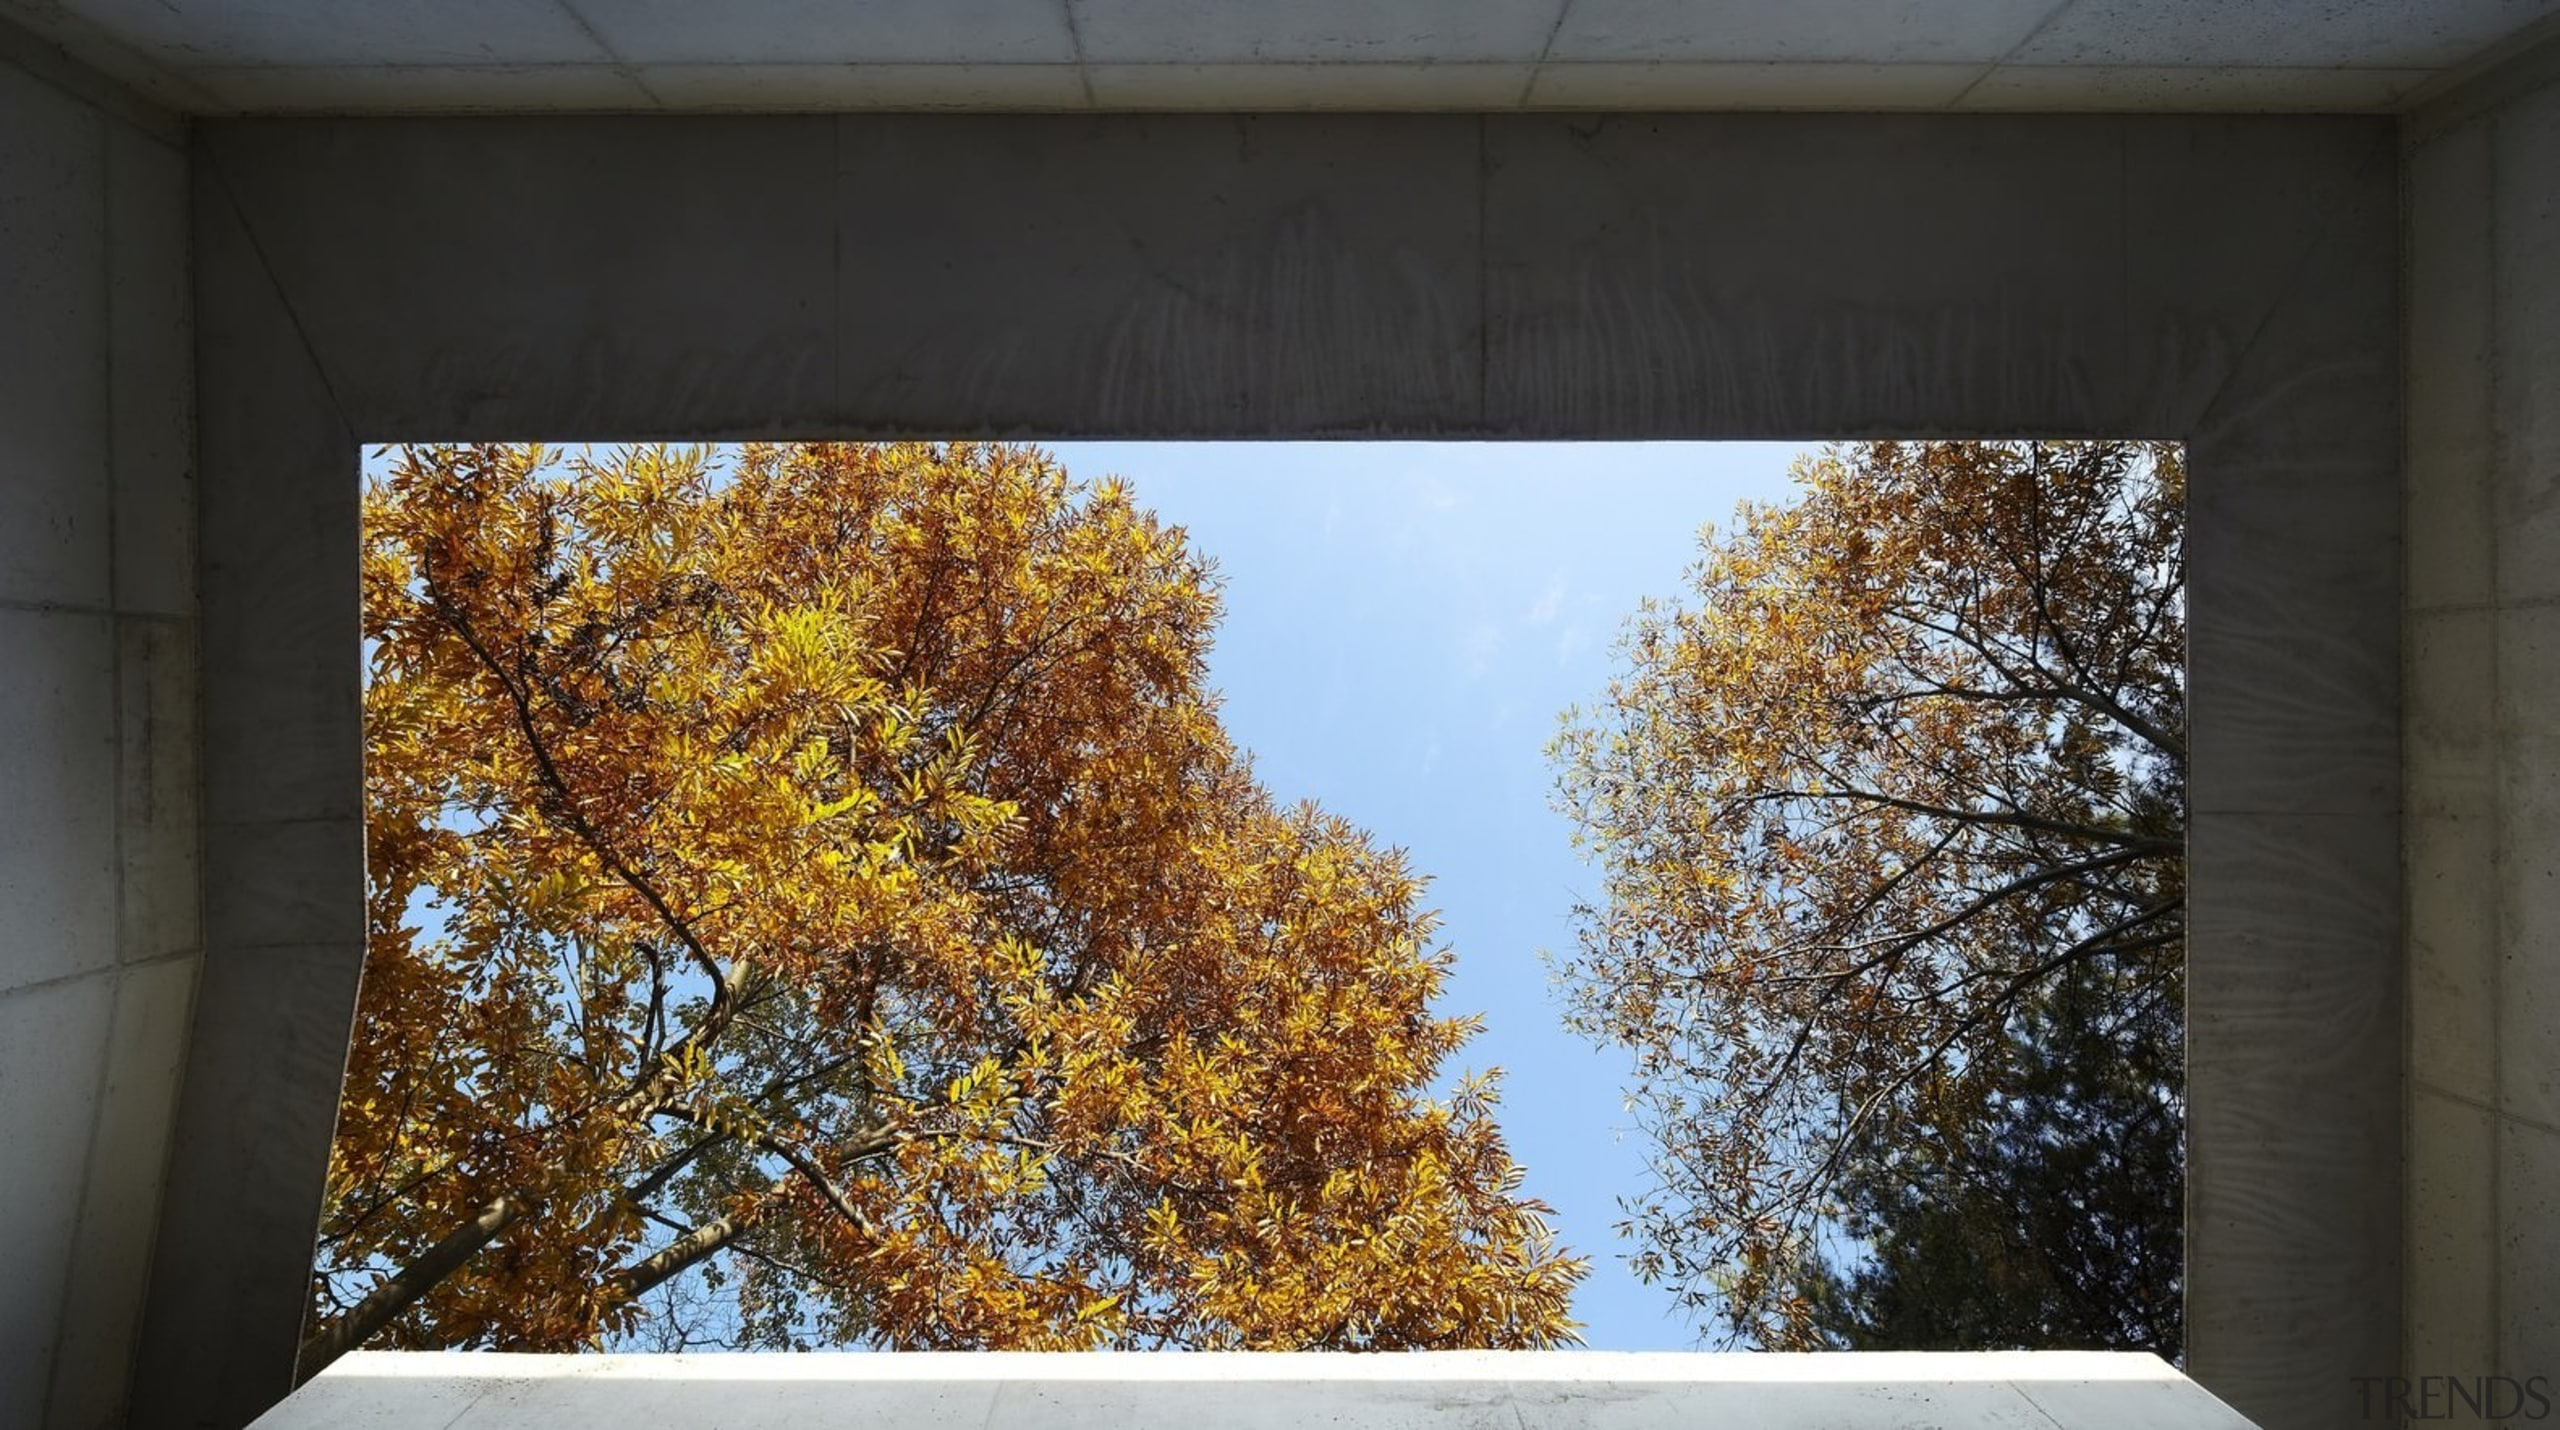 Looking up and out to the forest - architecture, autumn, house, leaf, sky, tree, wall, window, yellow, black